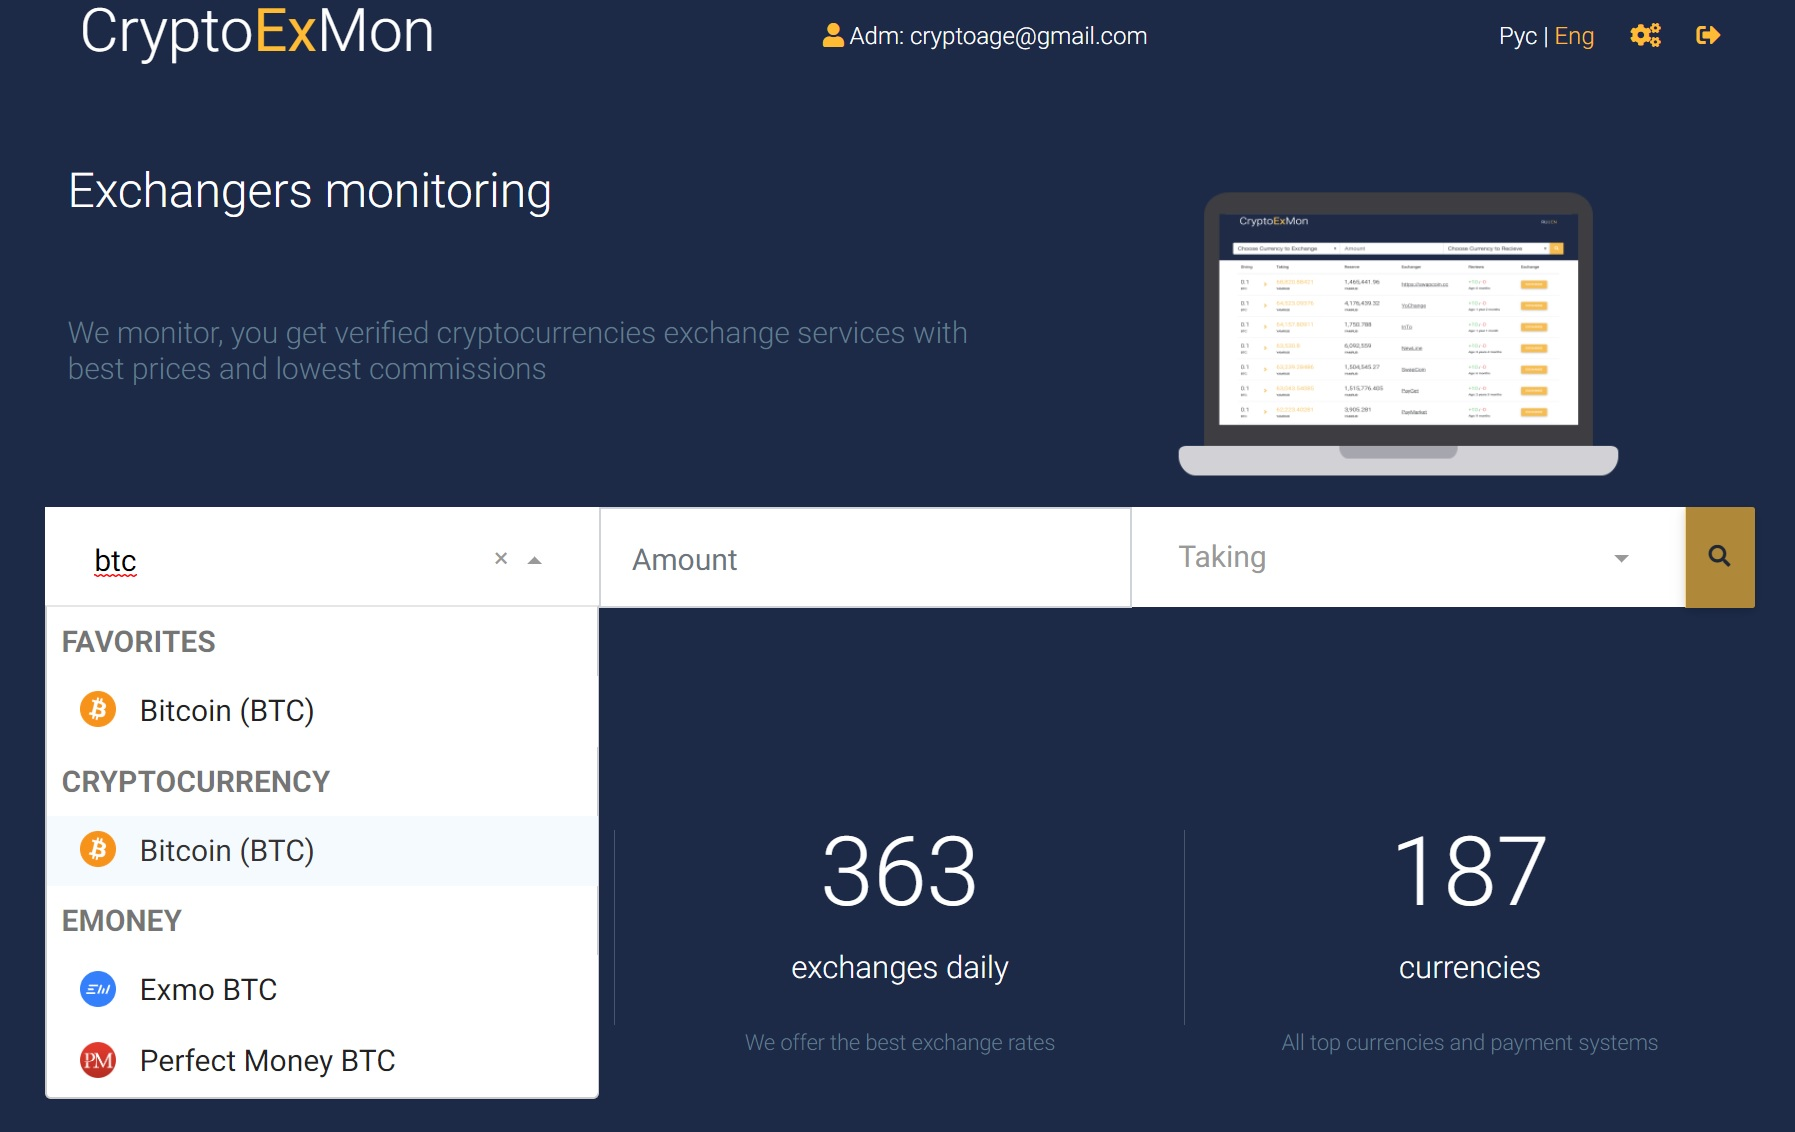 cryptoexmon monitoring exchanges